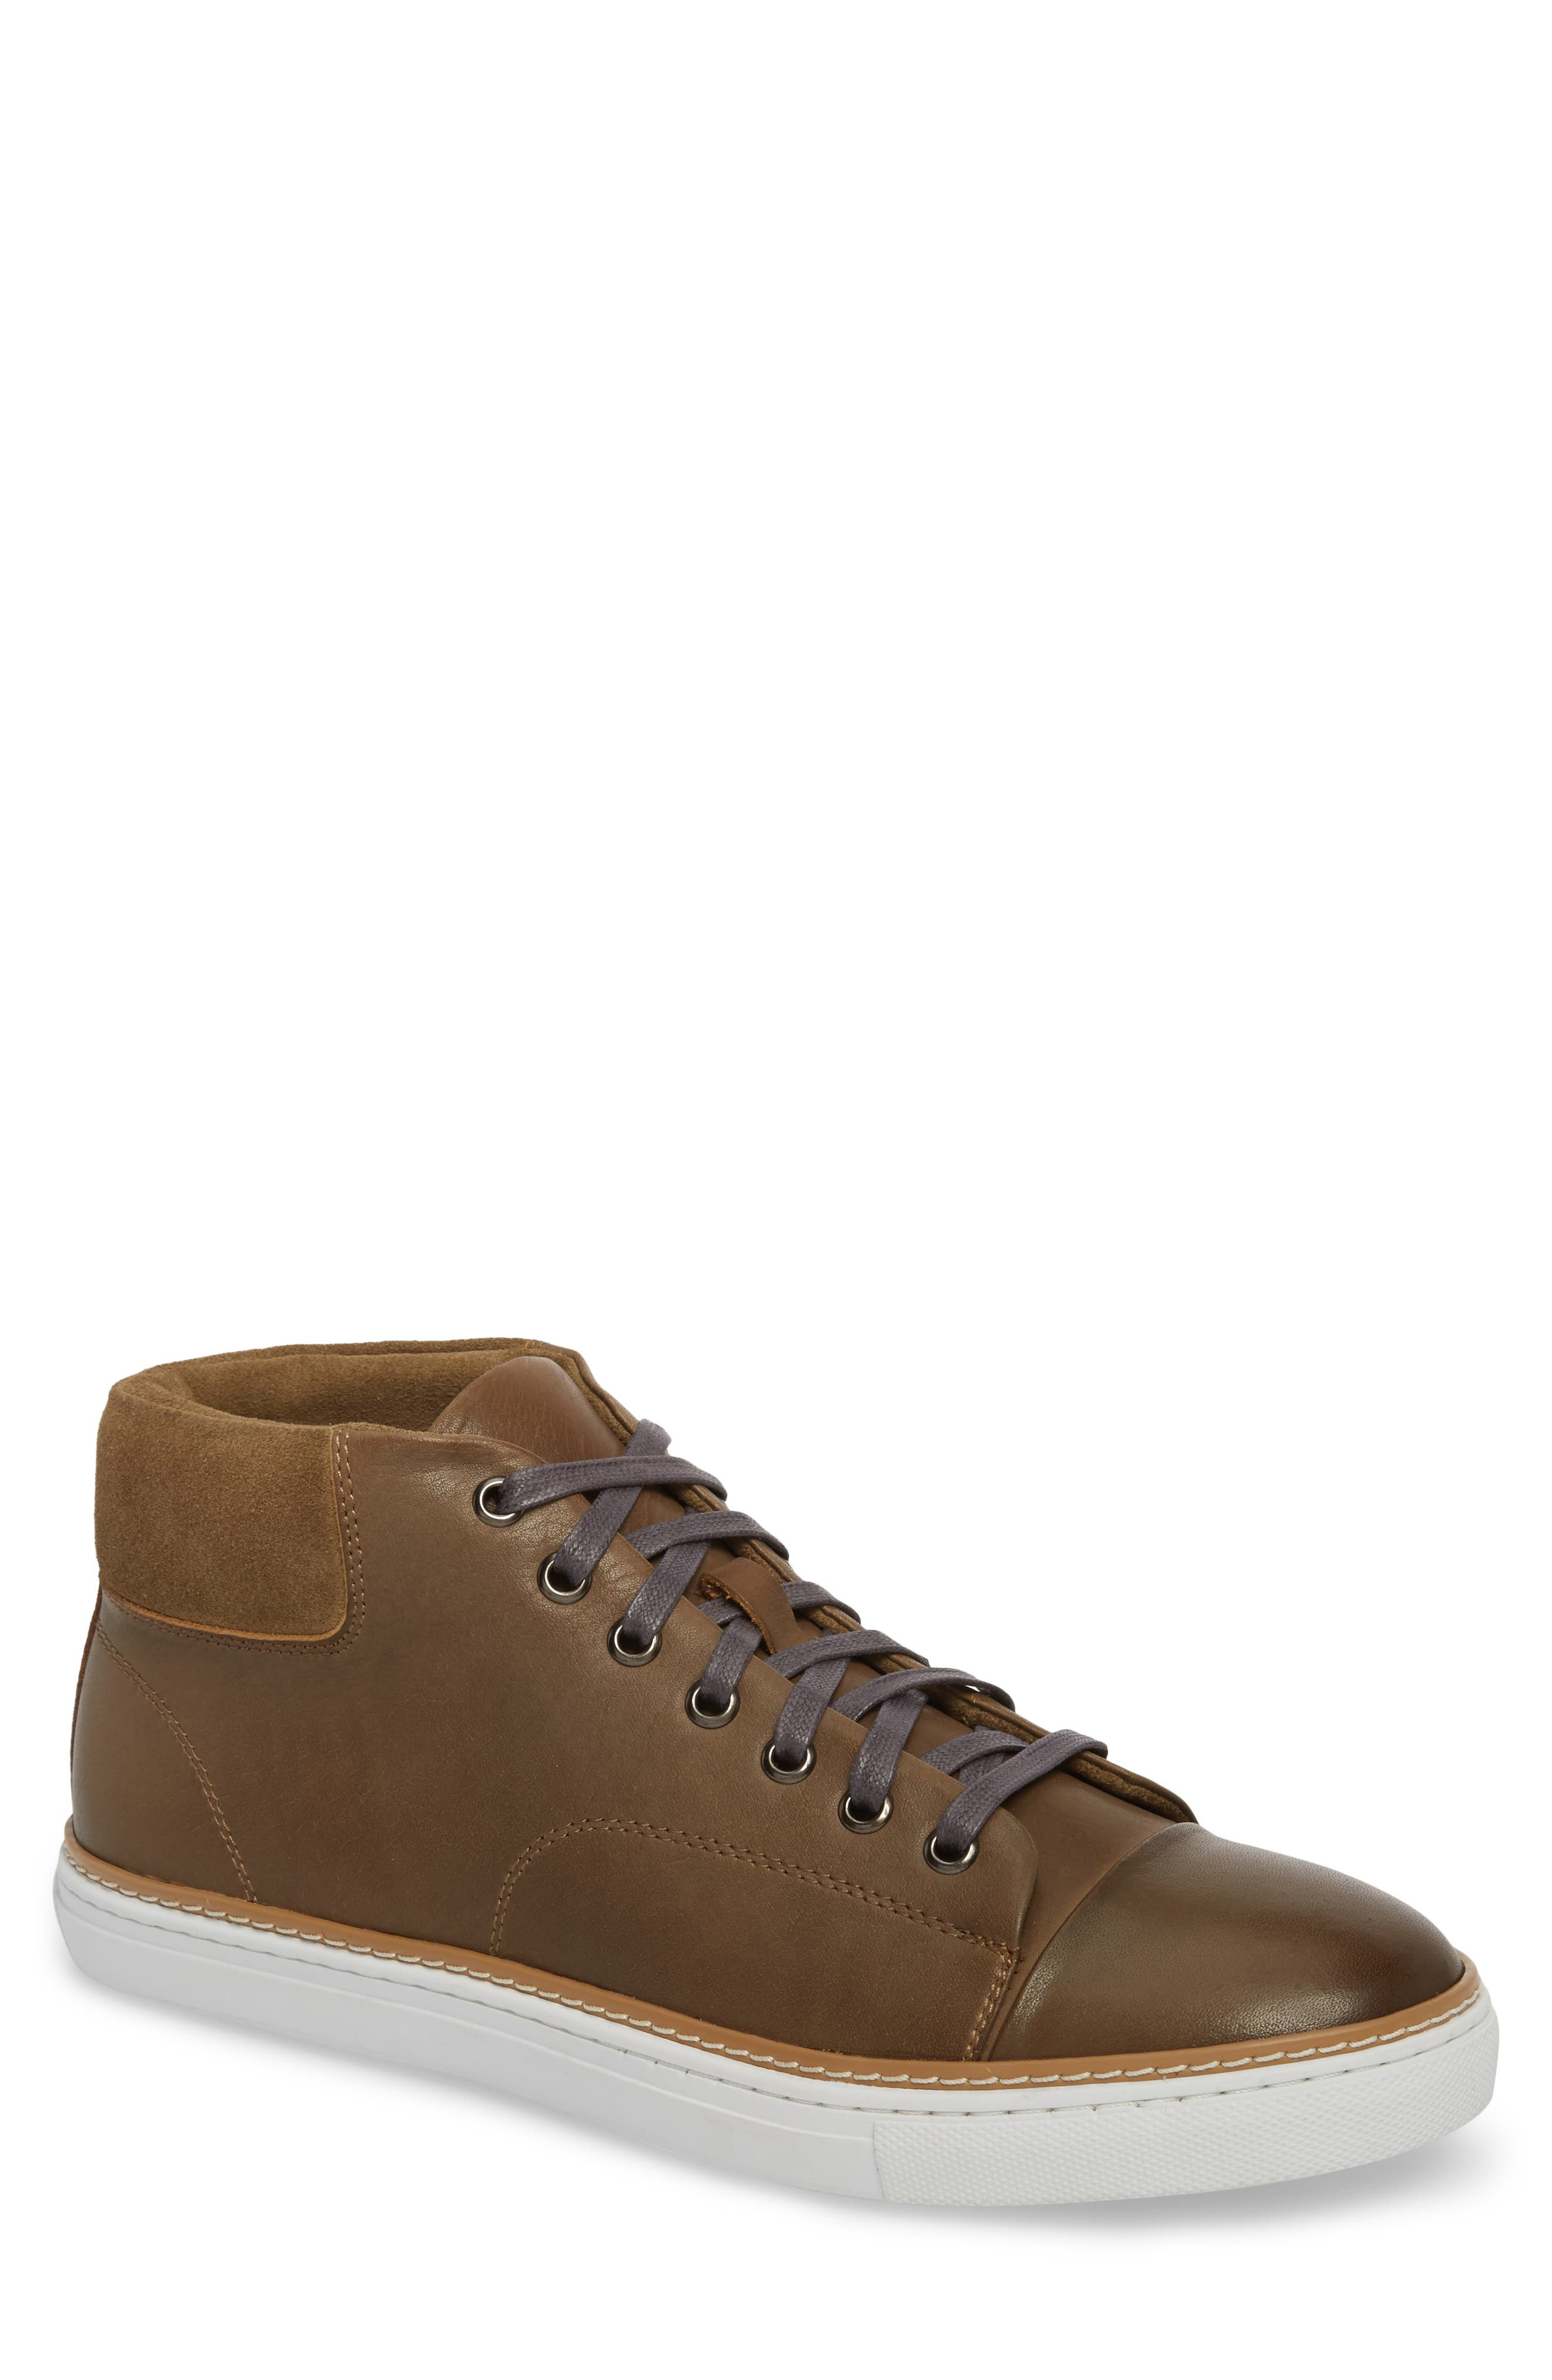 Grove Sneaker,                             Main thumbnail 1, color,                             Tan Leather